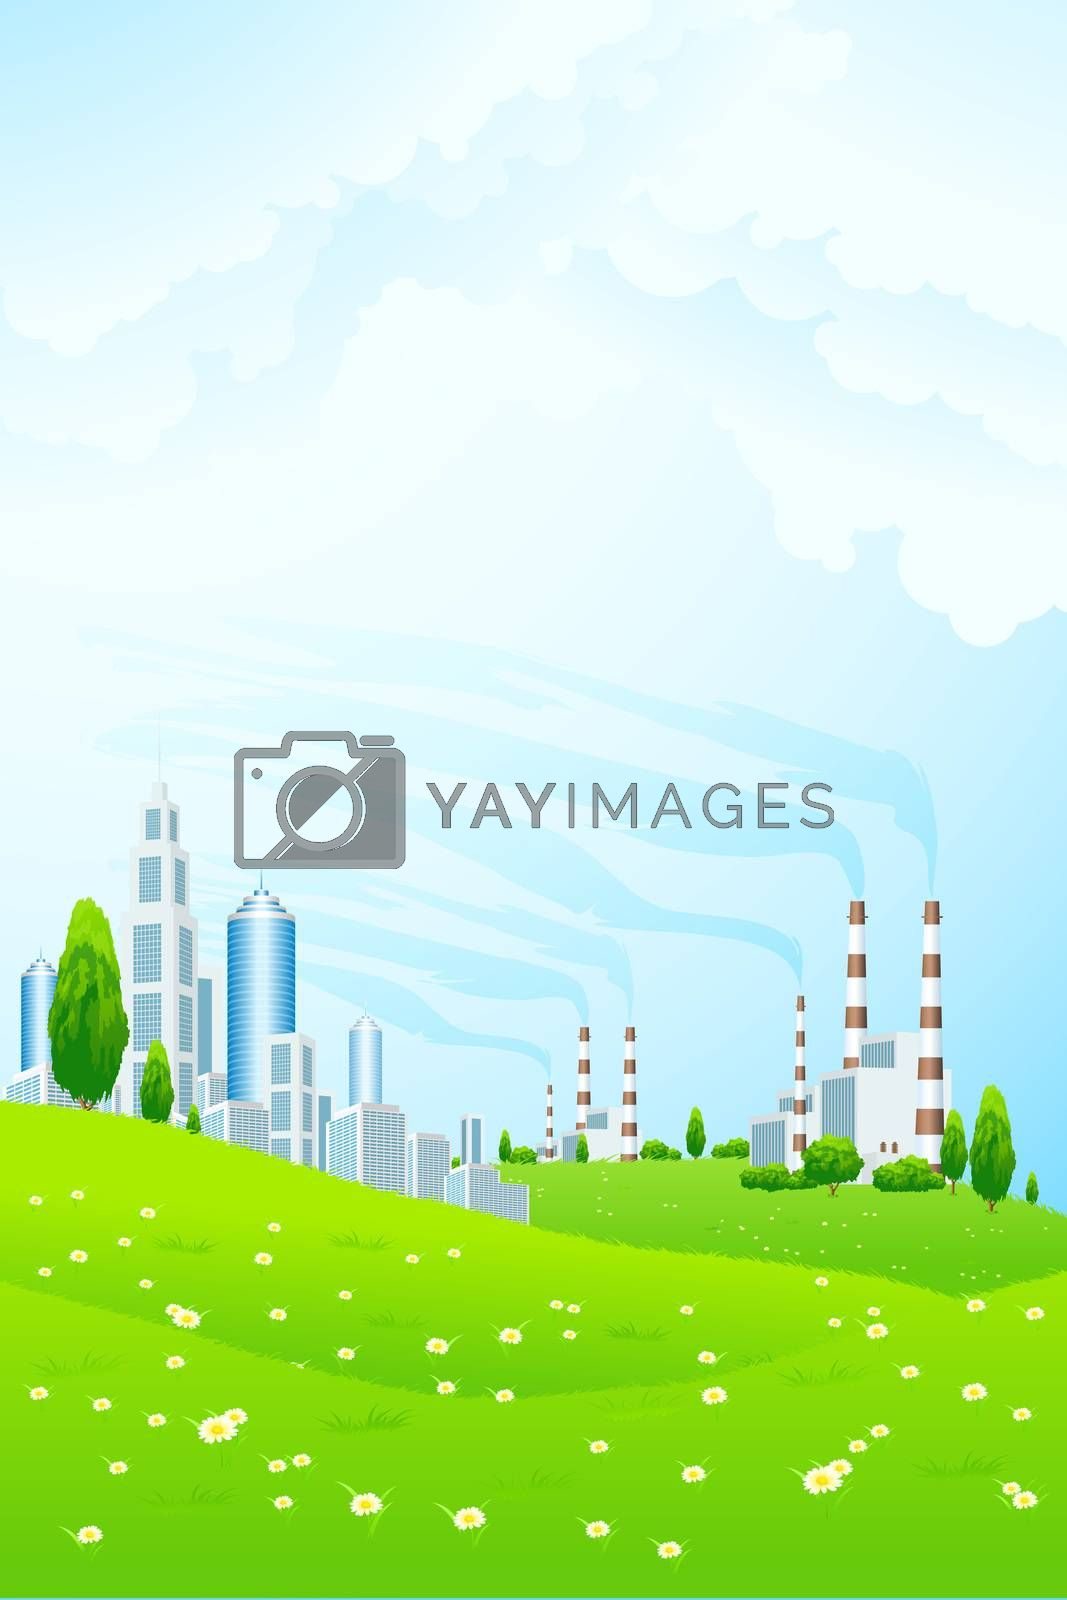 Green Landscape with City and Power Plant by WaD